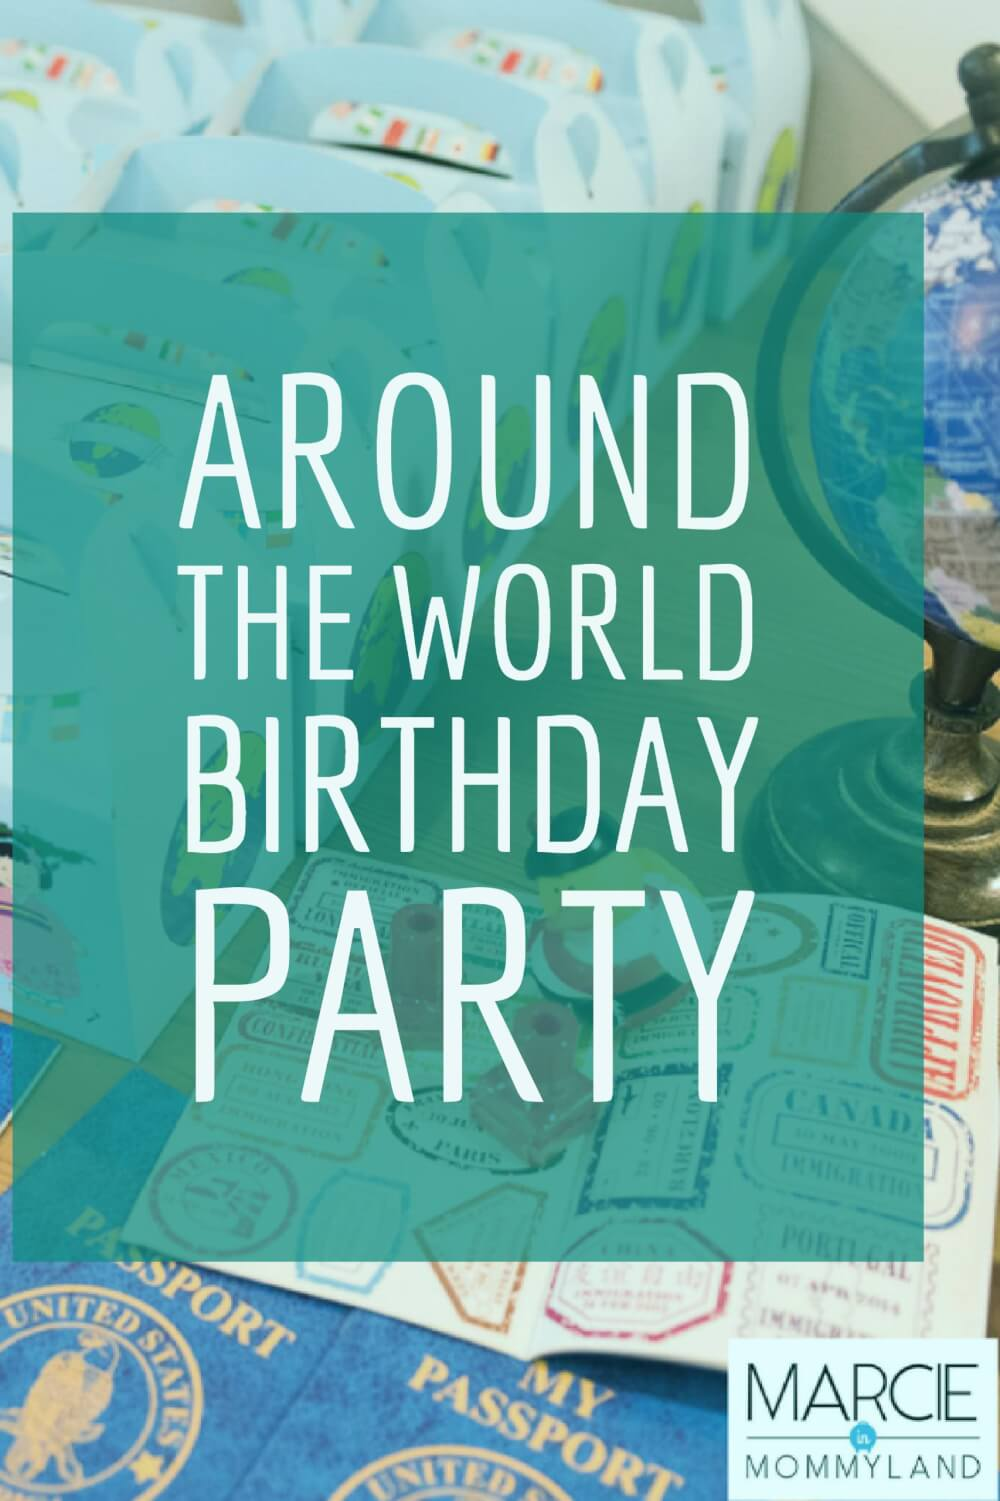 Happy Birthday From Around The World First Birthday Idea For Kids Party